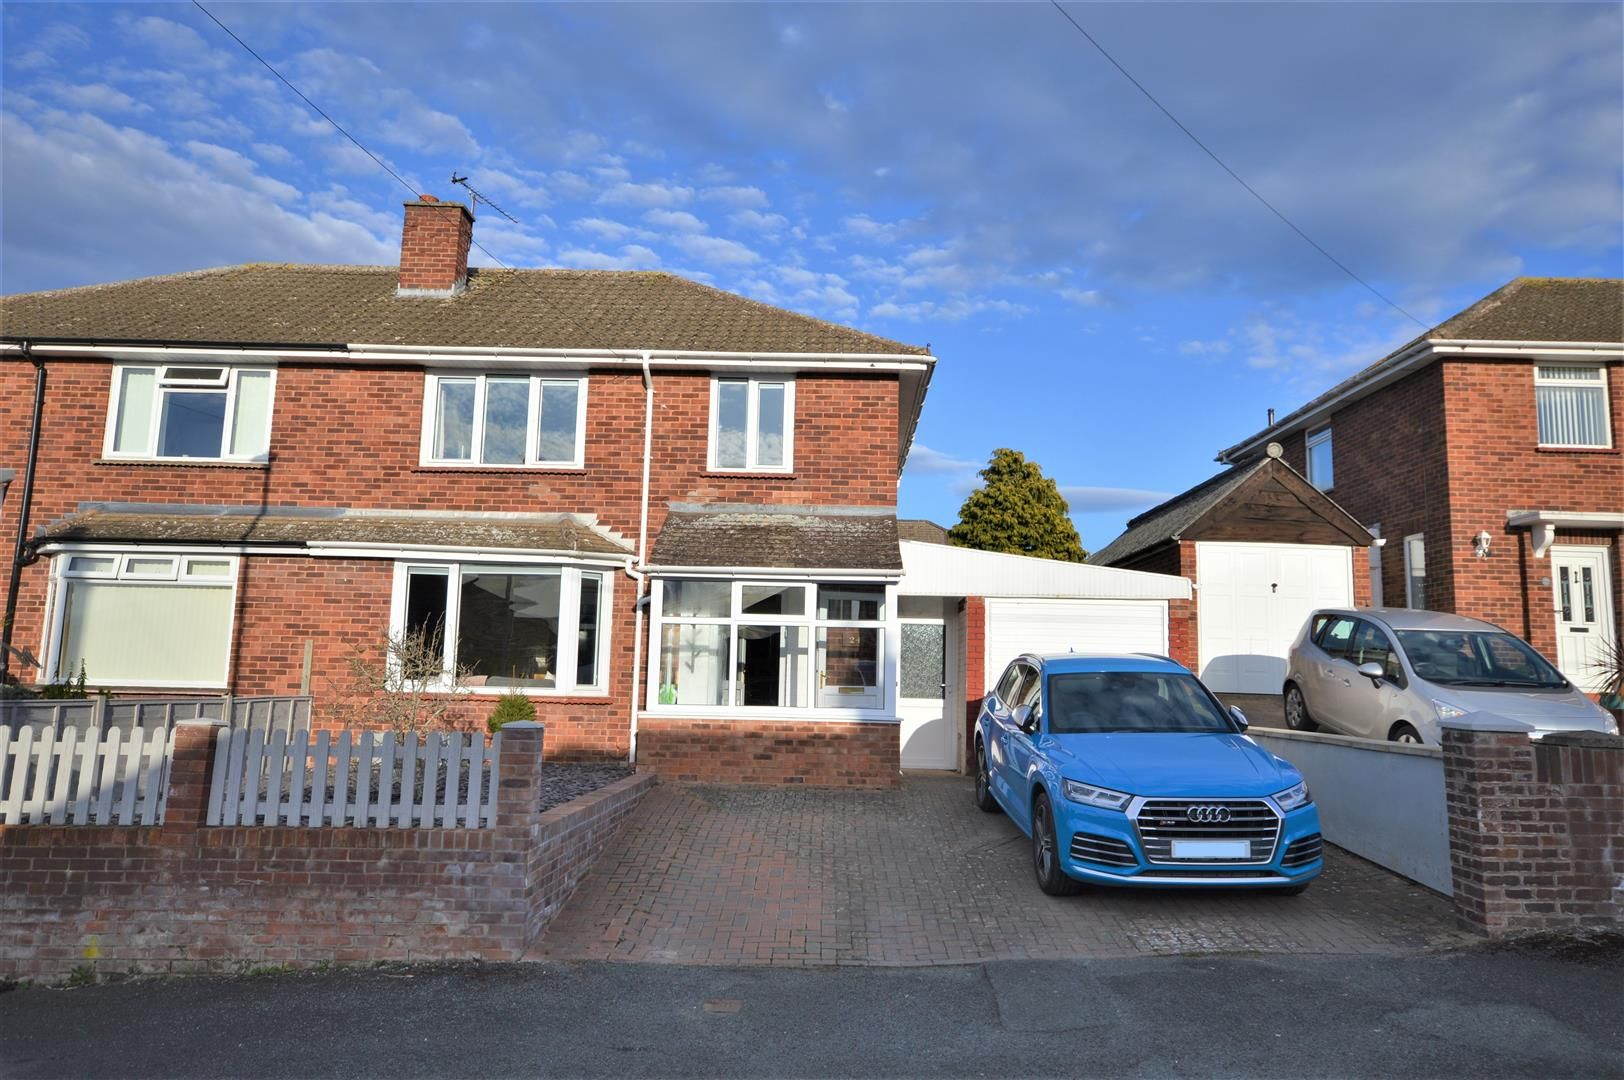 3 bed semi-detached for sale, HR1